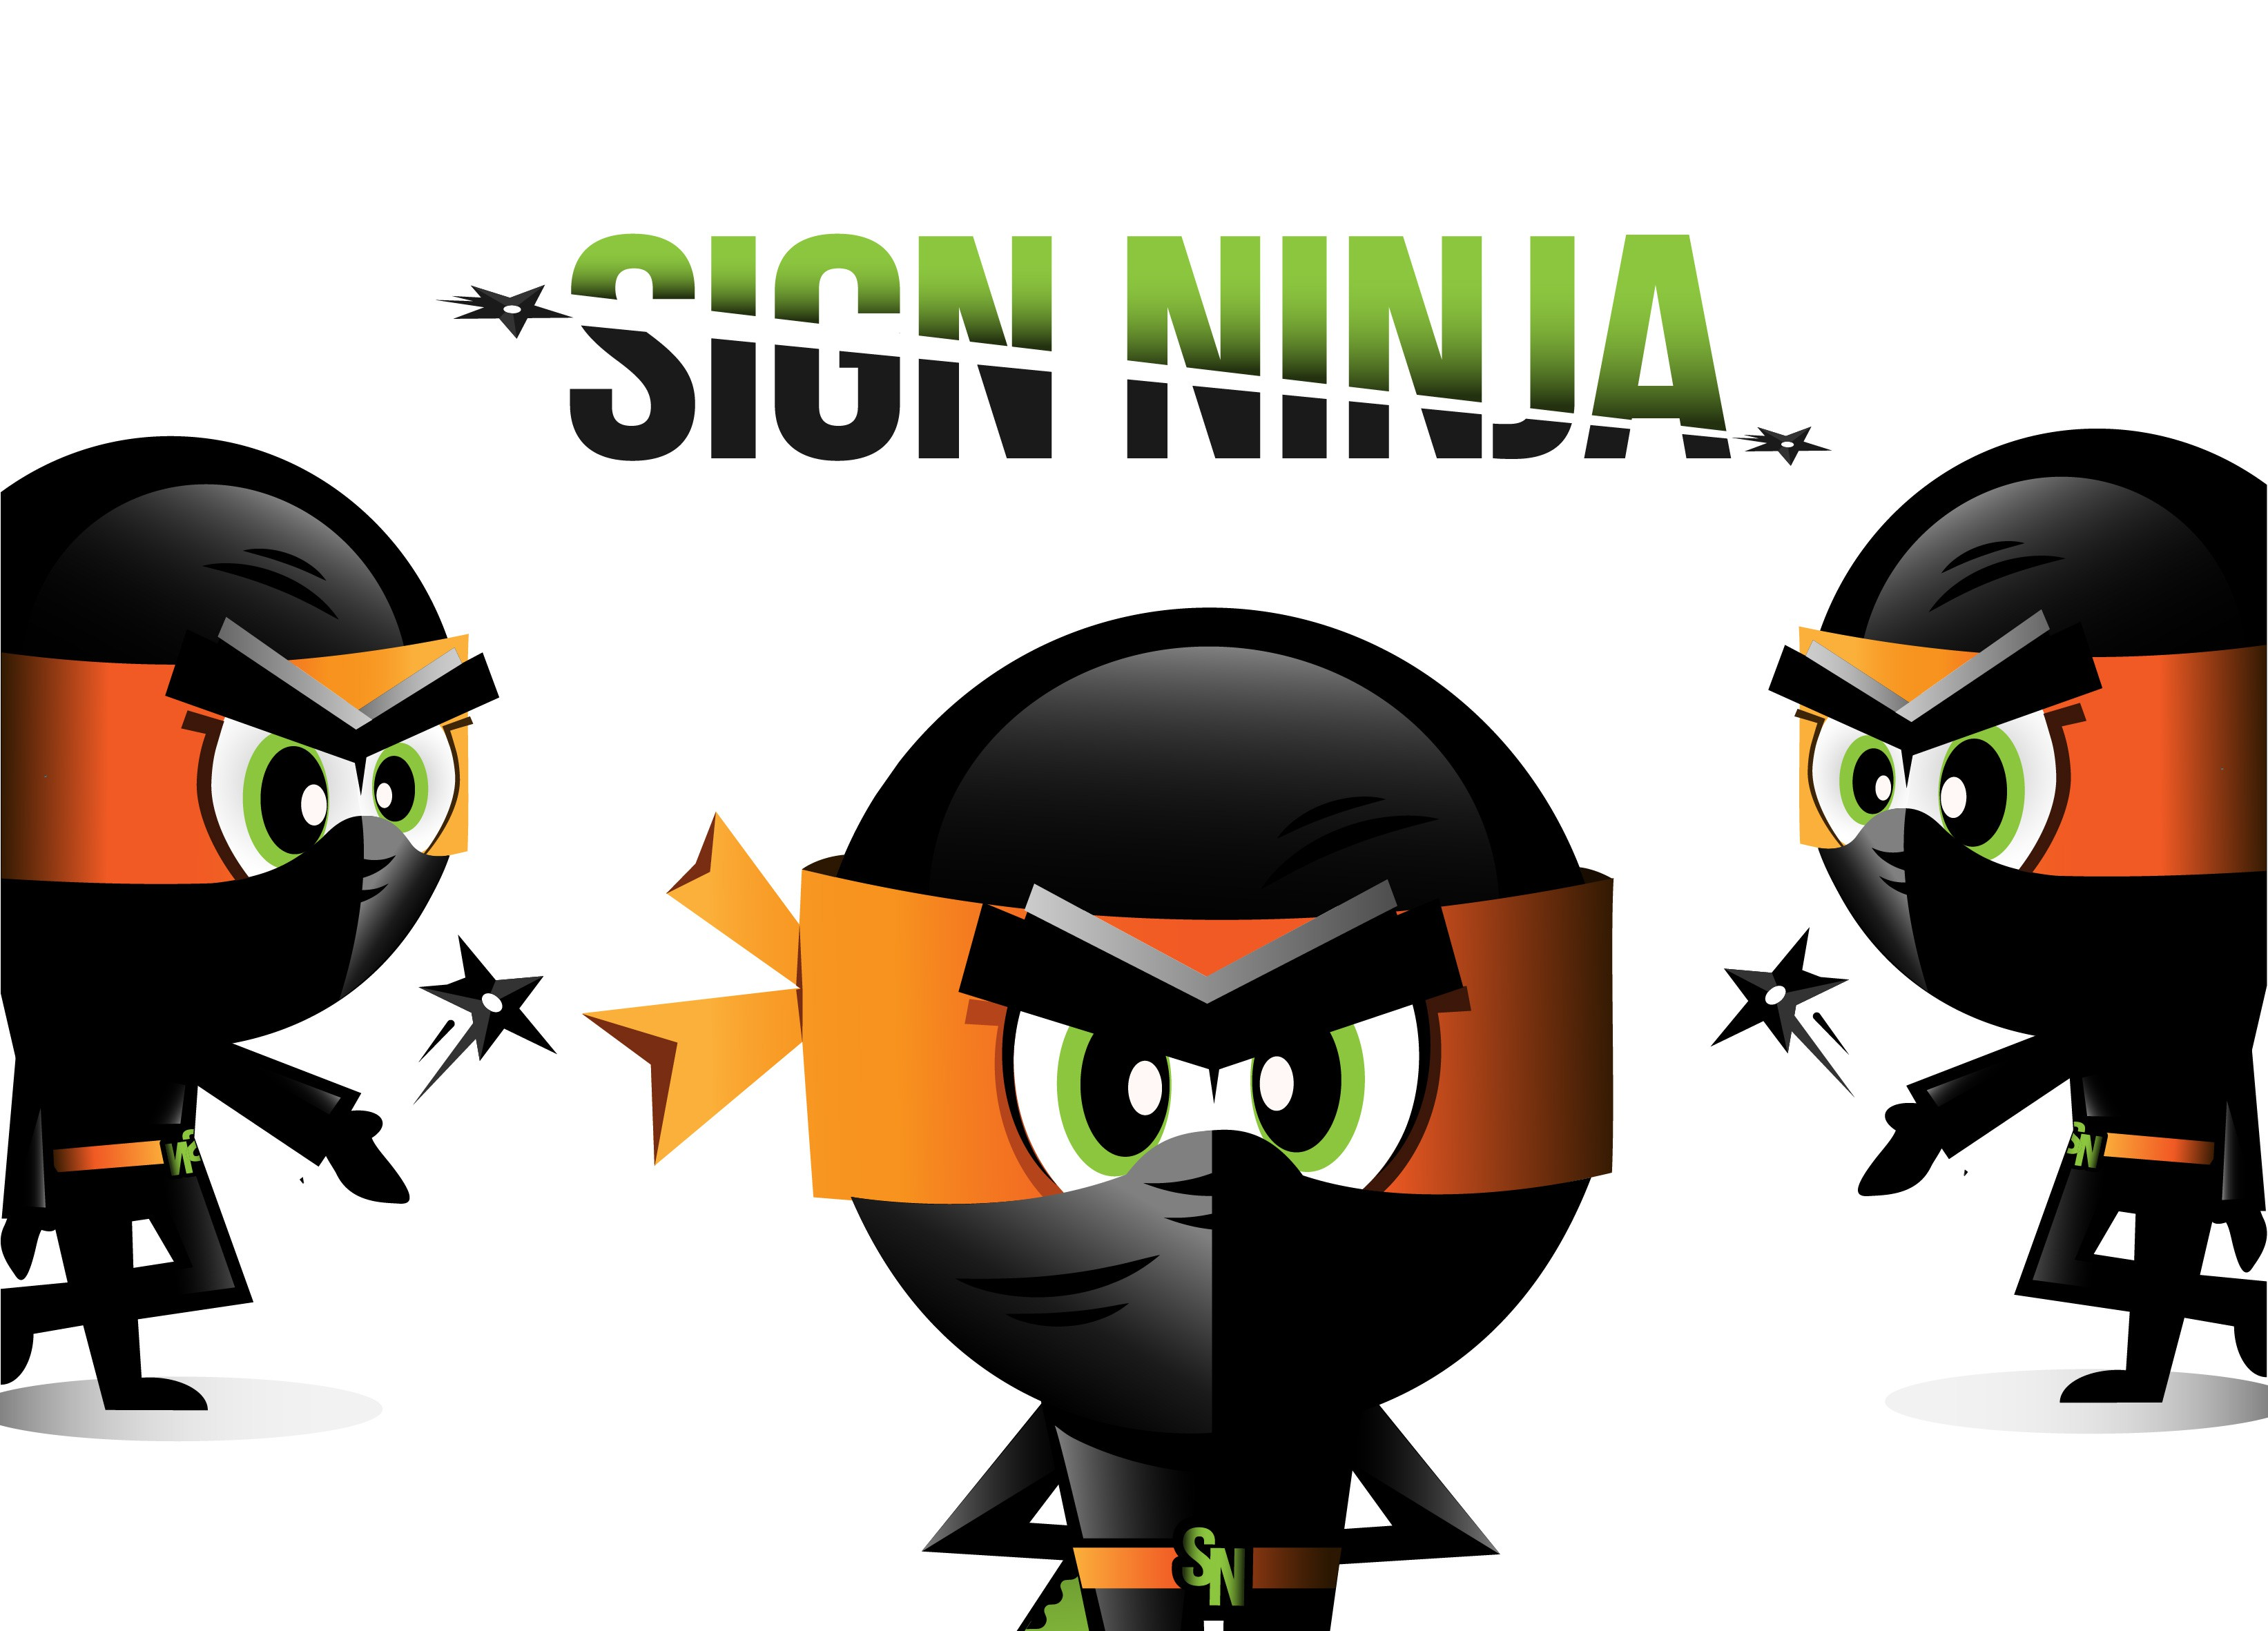 Sign Ninja - Character revisions.